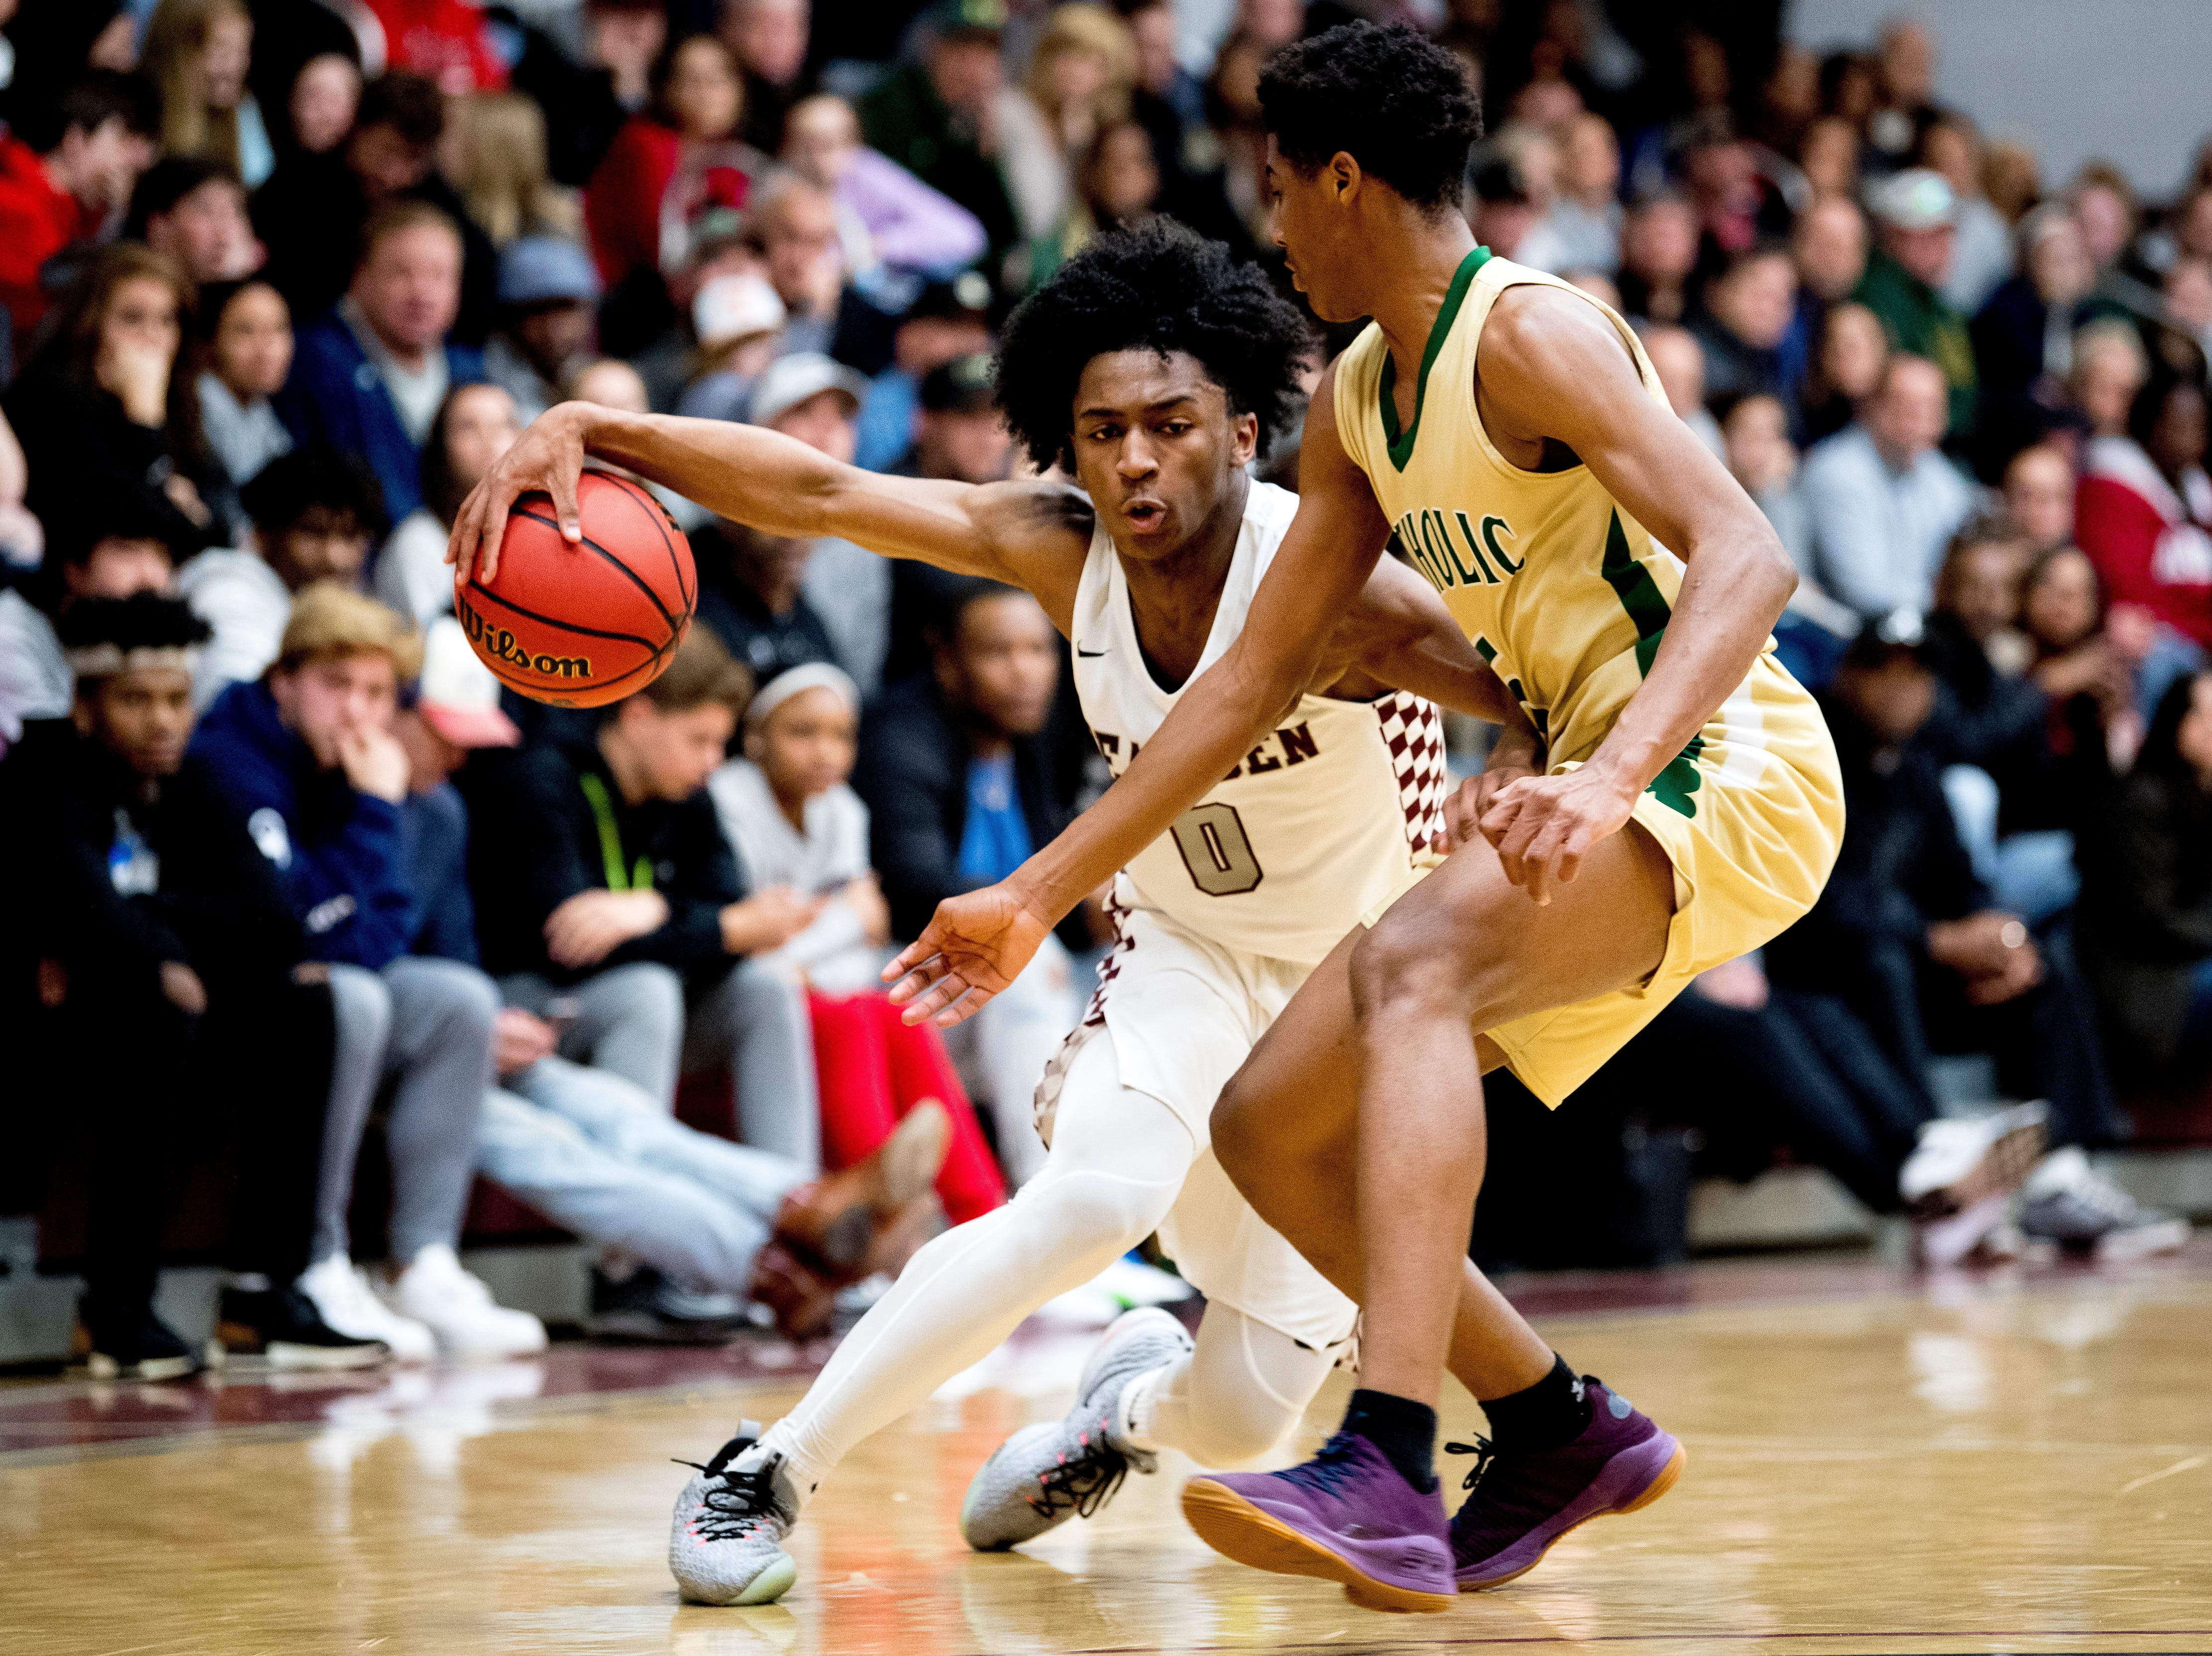 Bearden's Ques Glover (0) tries to dribble around Catholic's B.D. Edwards (5) during a game between Bearden and Catholic at Bearden High School in Knoxville, Tennessee on Thursday, January 10, 2019.